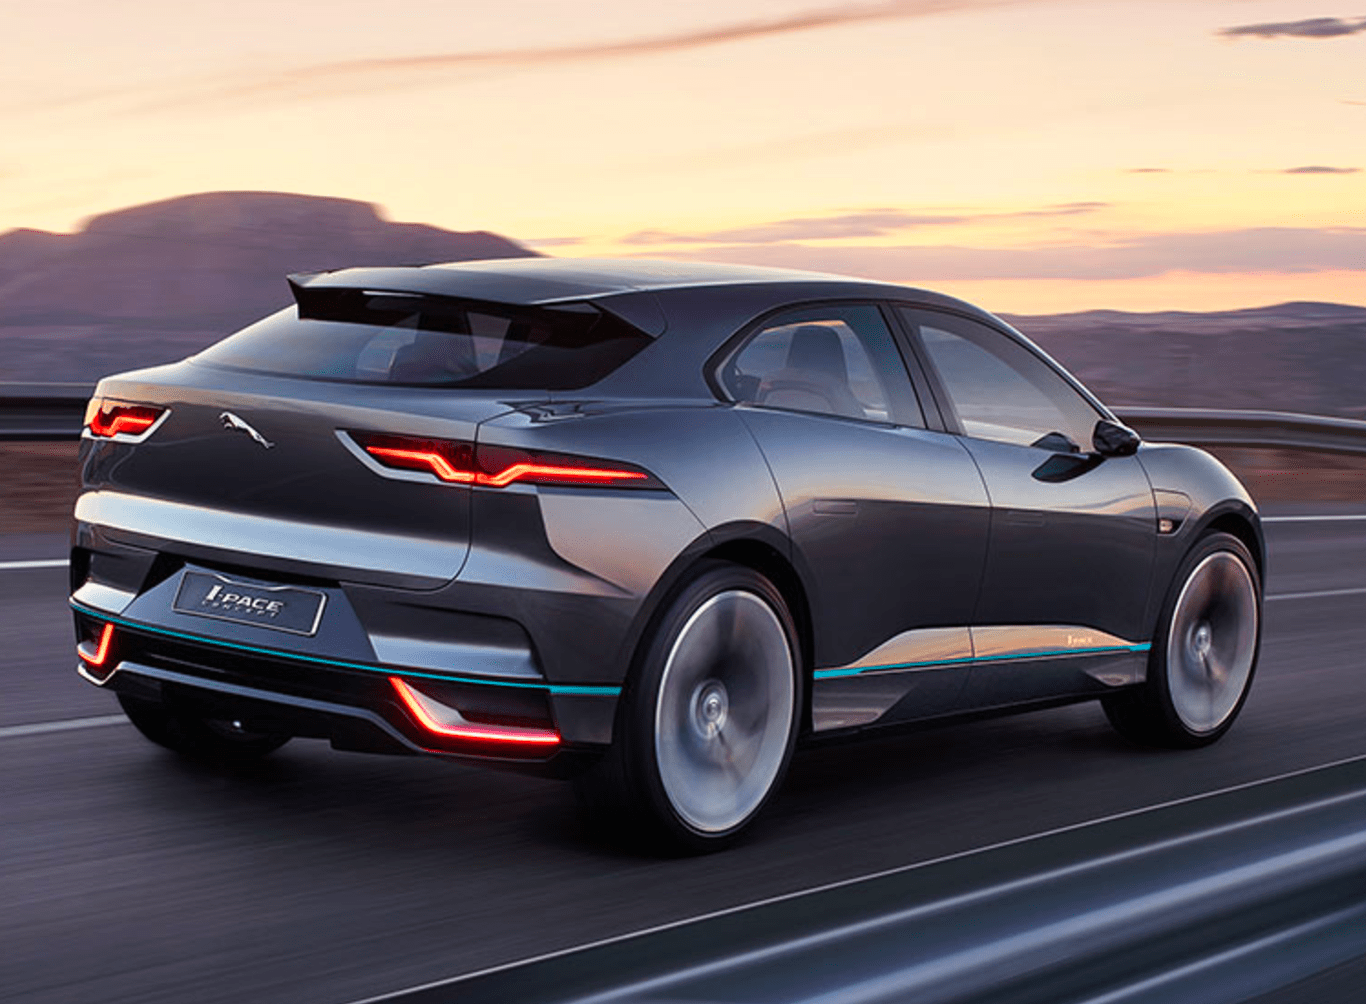 Jaguar Suv Price Uk Jaguar I Pace Suv Electric Concept Anirudh Sethi Report